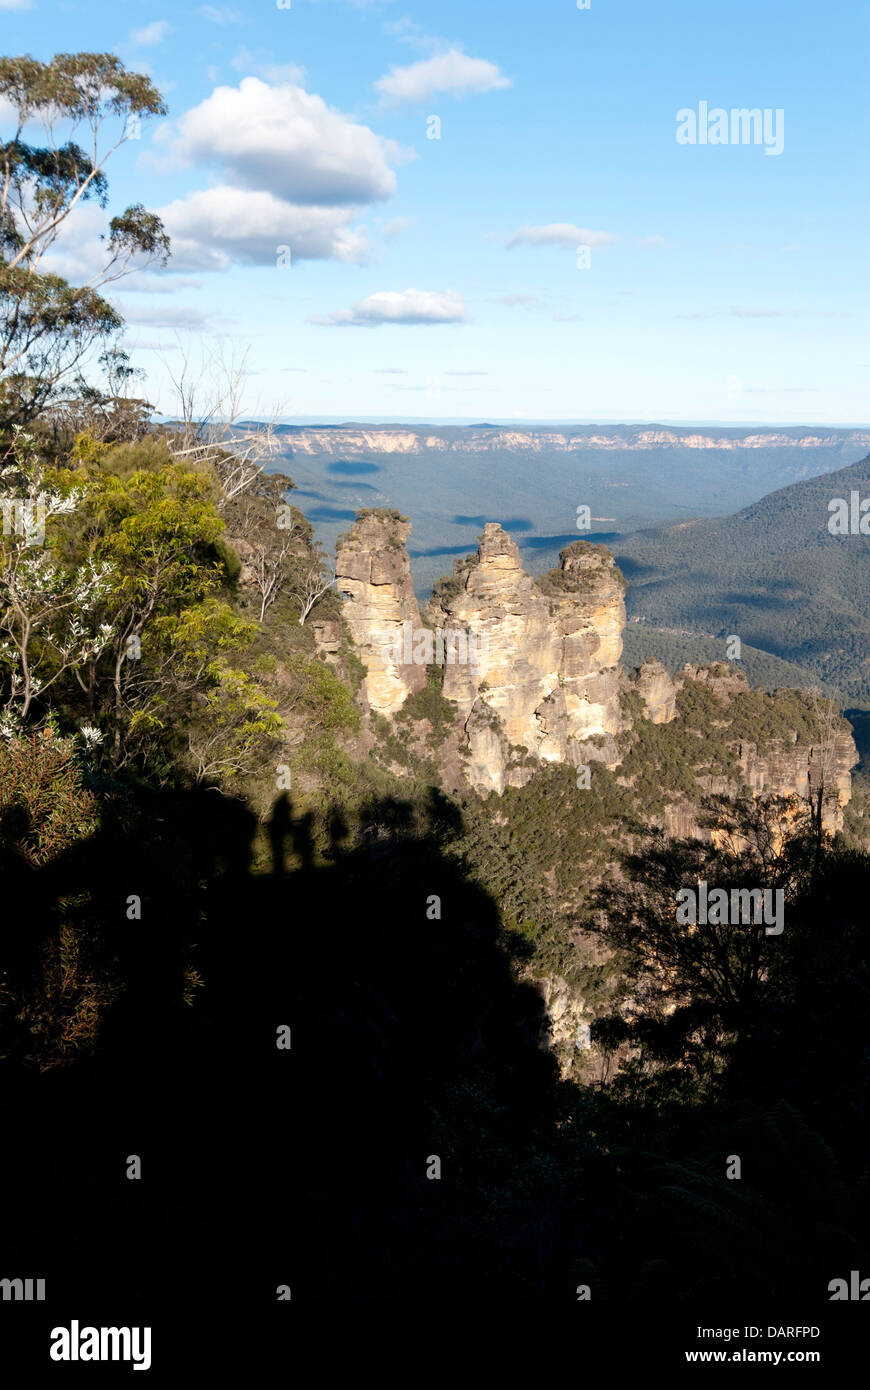 The Three Sisters rock formation at Echo Point, with the shadow of visitors on the viewing platform - Stock Image